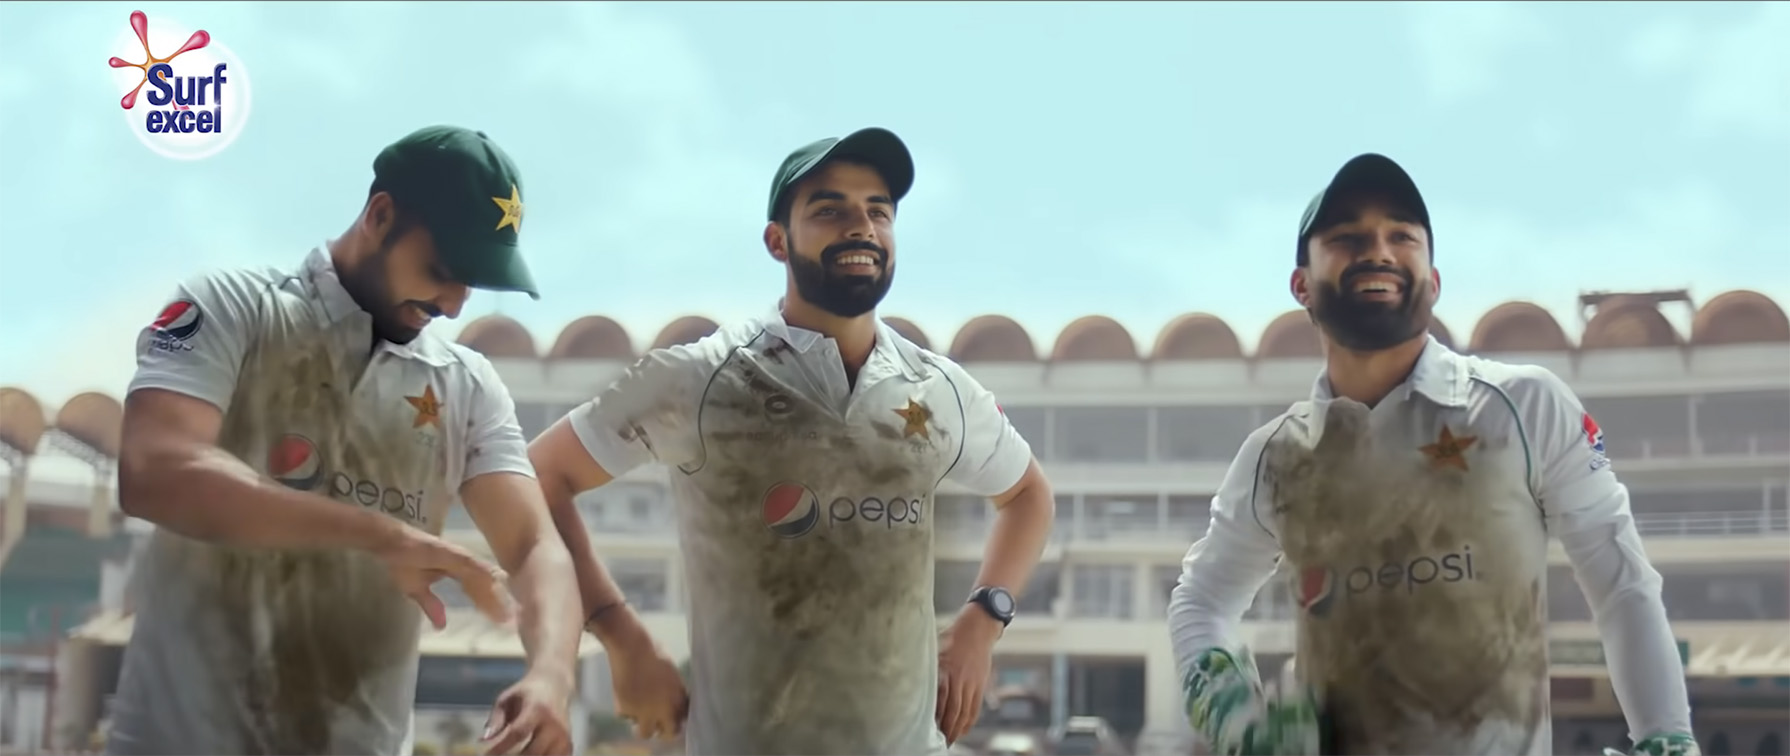 BBDO Pakistan and Surf Excel aim to improve cricketers' fielding abilities by introducing new cricket trophy